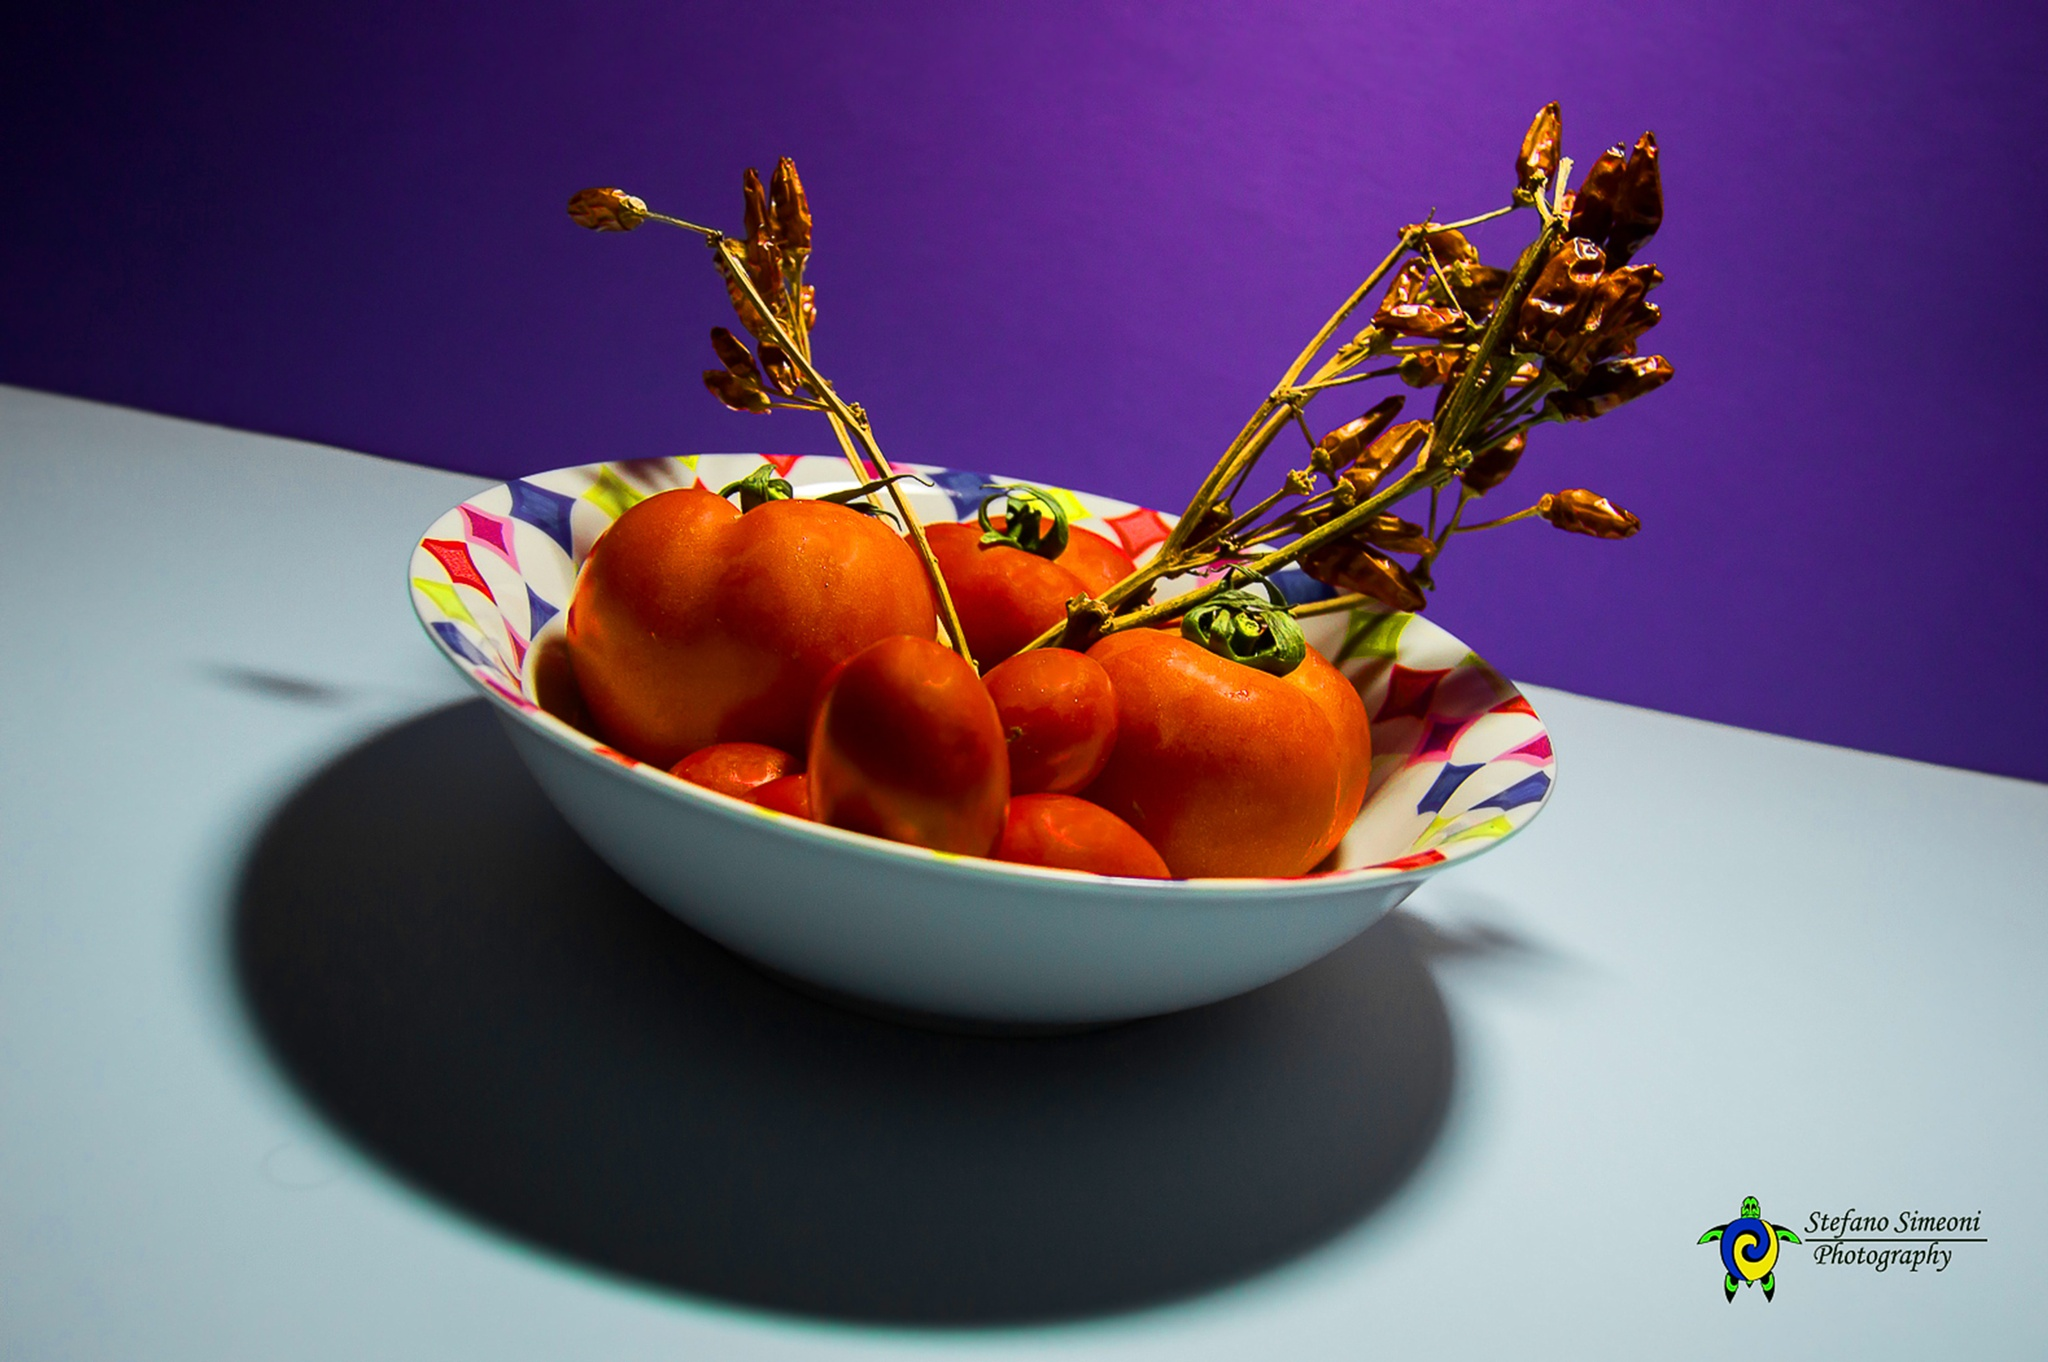 Tomatoes & Red Pepper by ssimeoni